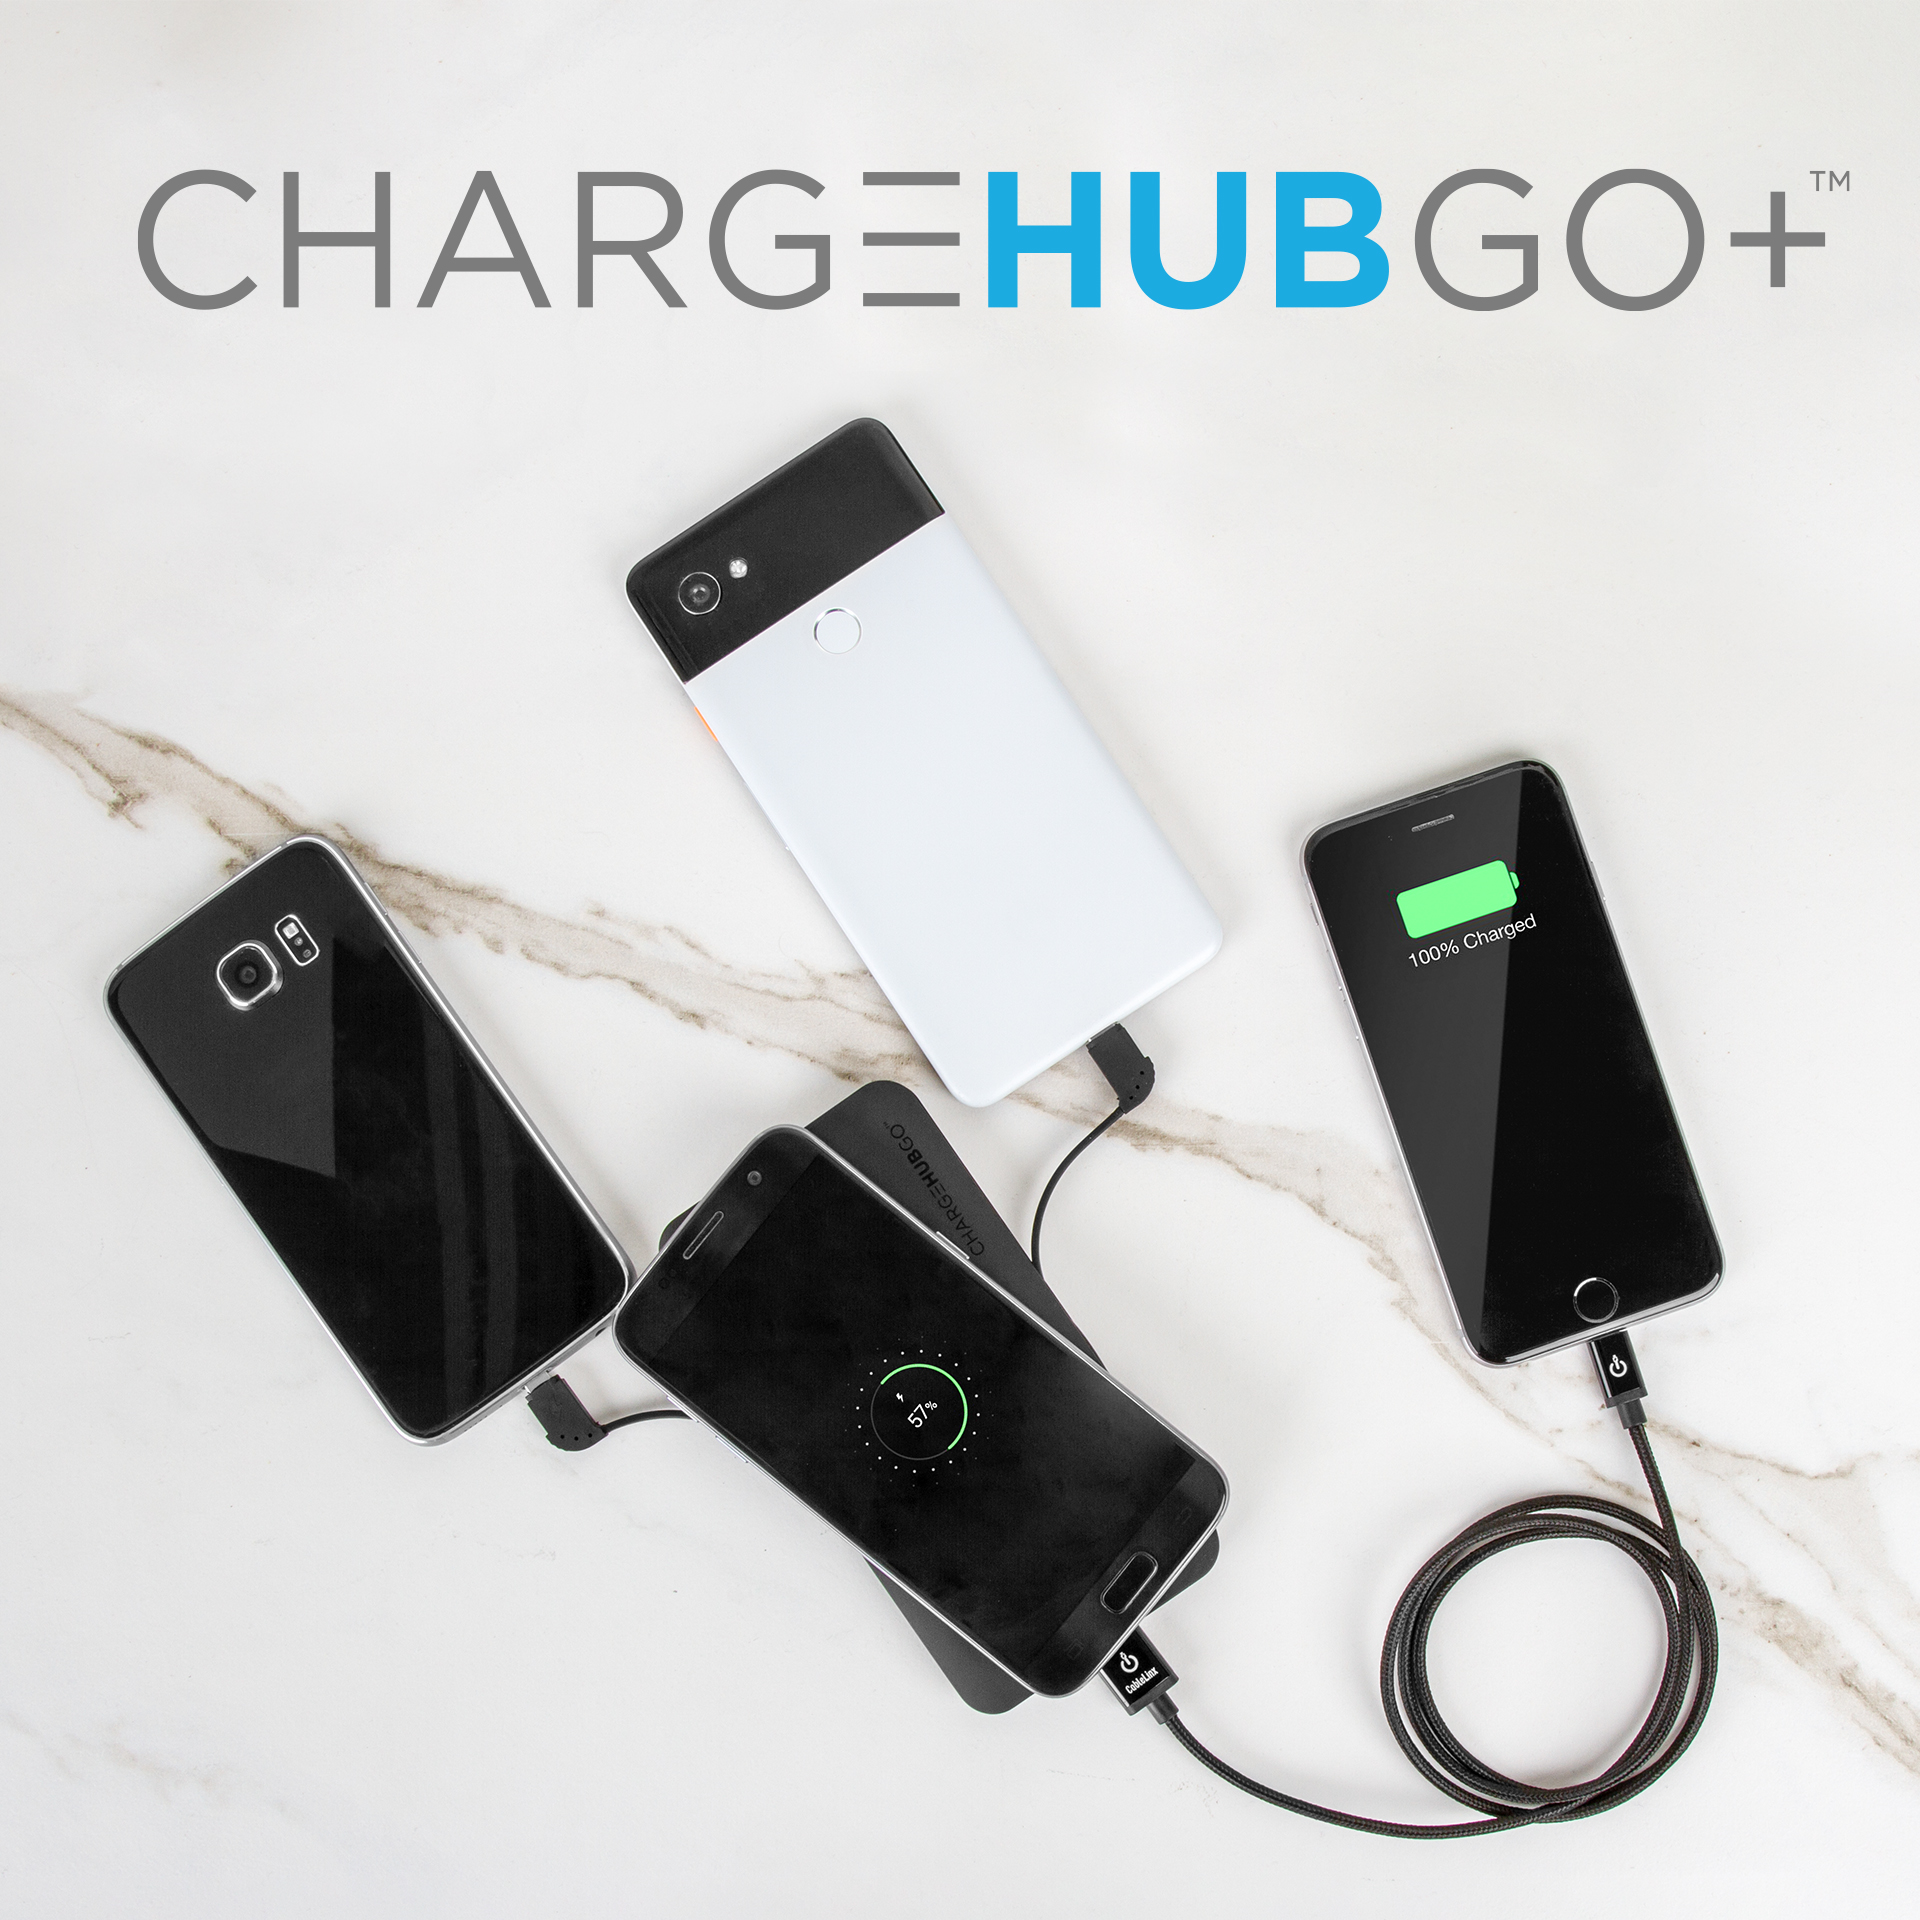 How Does Chargehubgo Plus Work